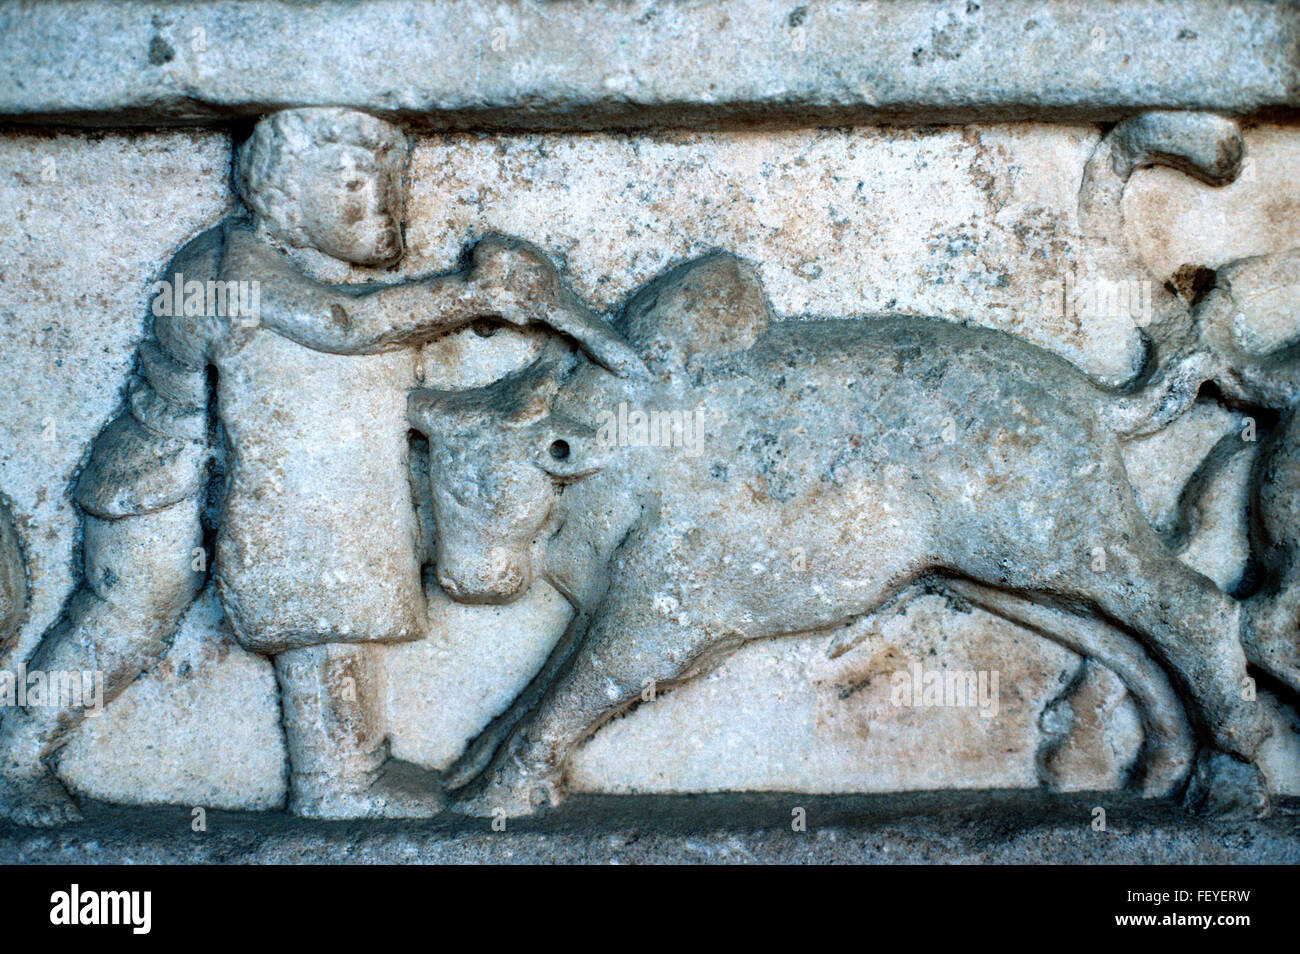 Ancient Greek or Roman Marble Carving or Bas-Relief of a Gladiator Fighting a Bull, Pergamon, Turkey Stock Photo